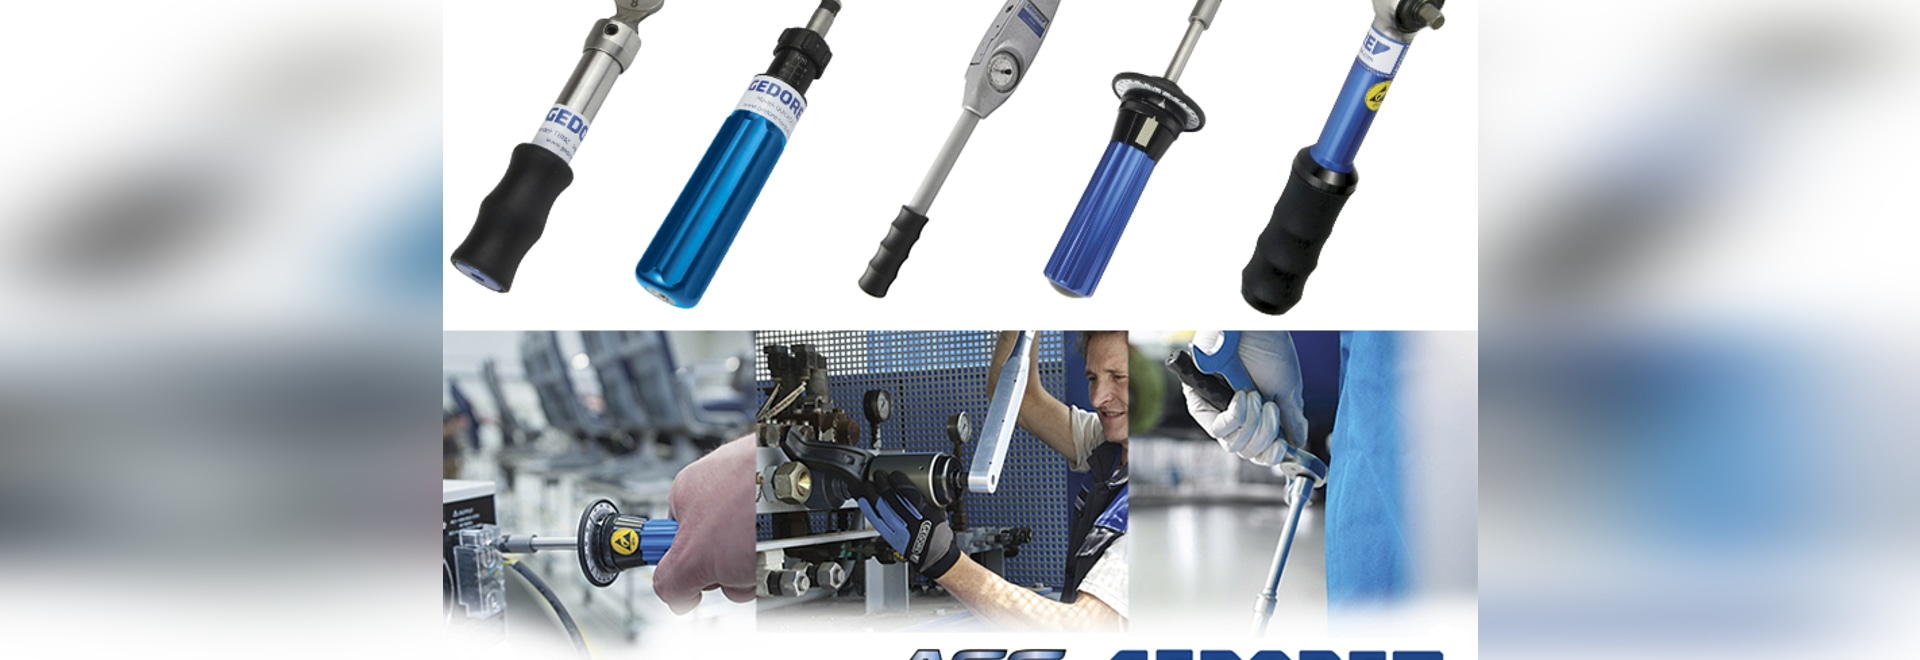 ASG and Gedore Manual Torque Tools